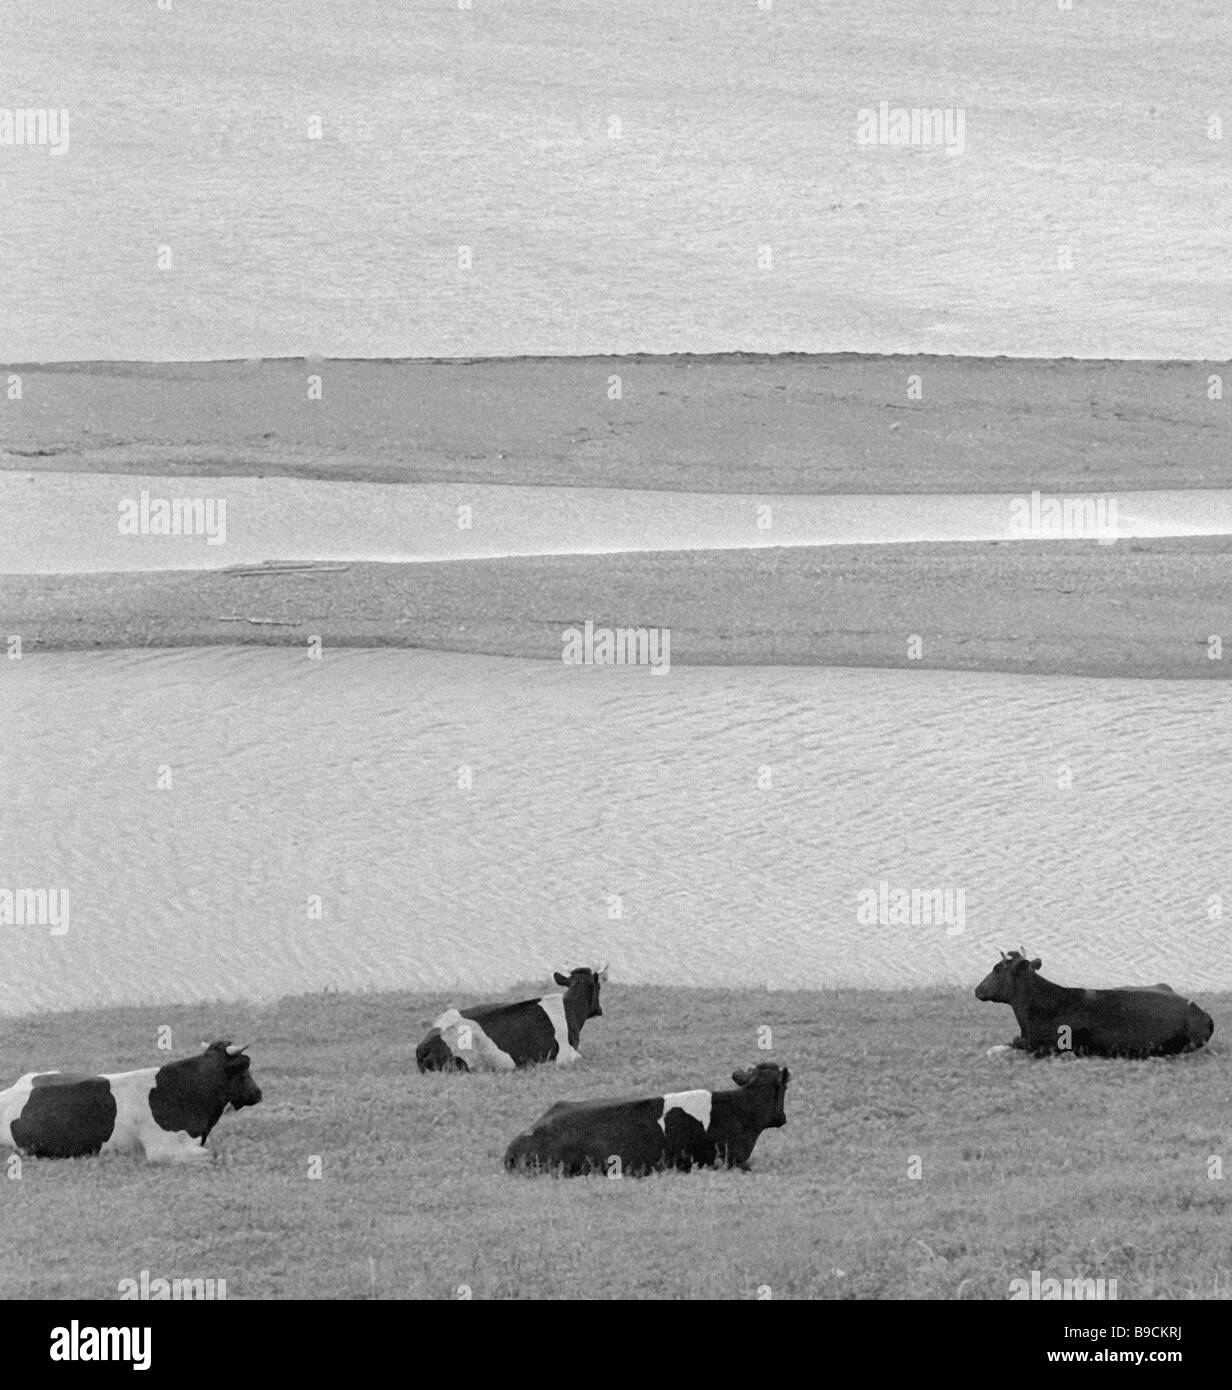 A herd of cattle pasturing on a firth shore - Stock Image